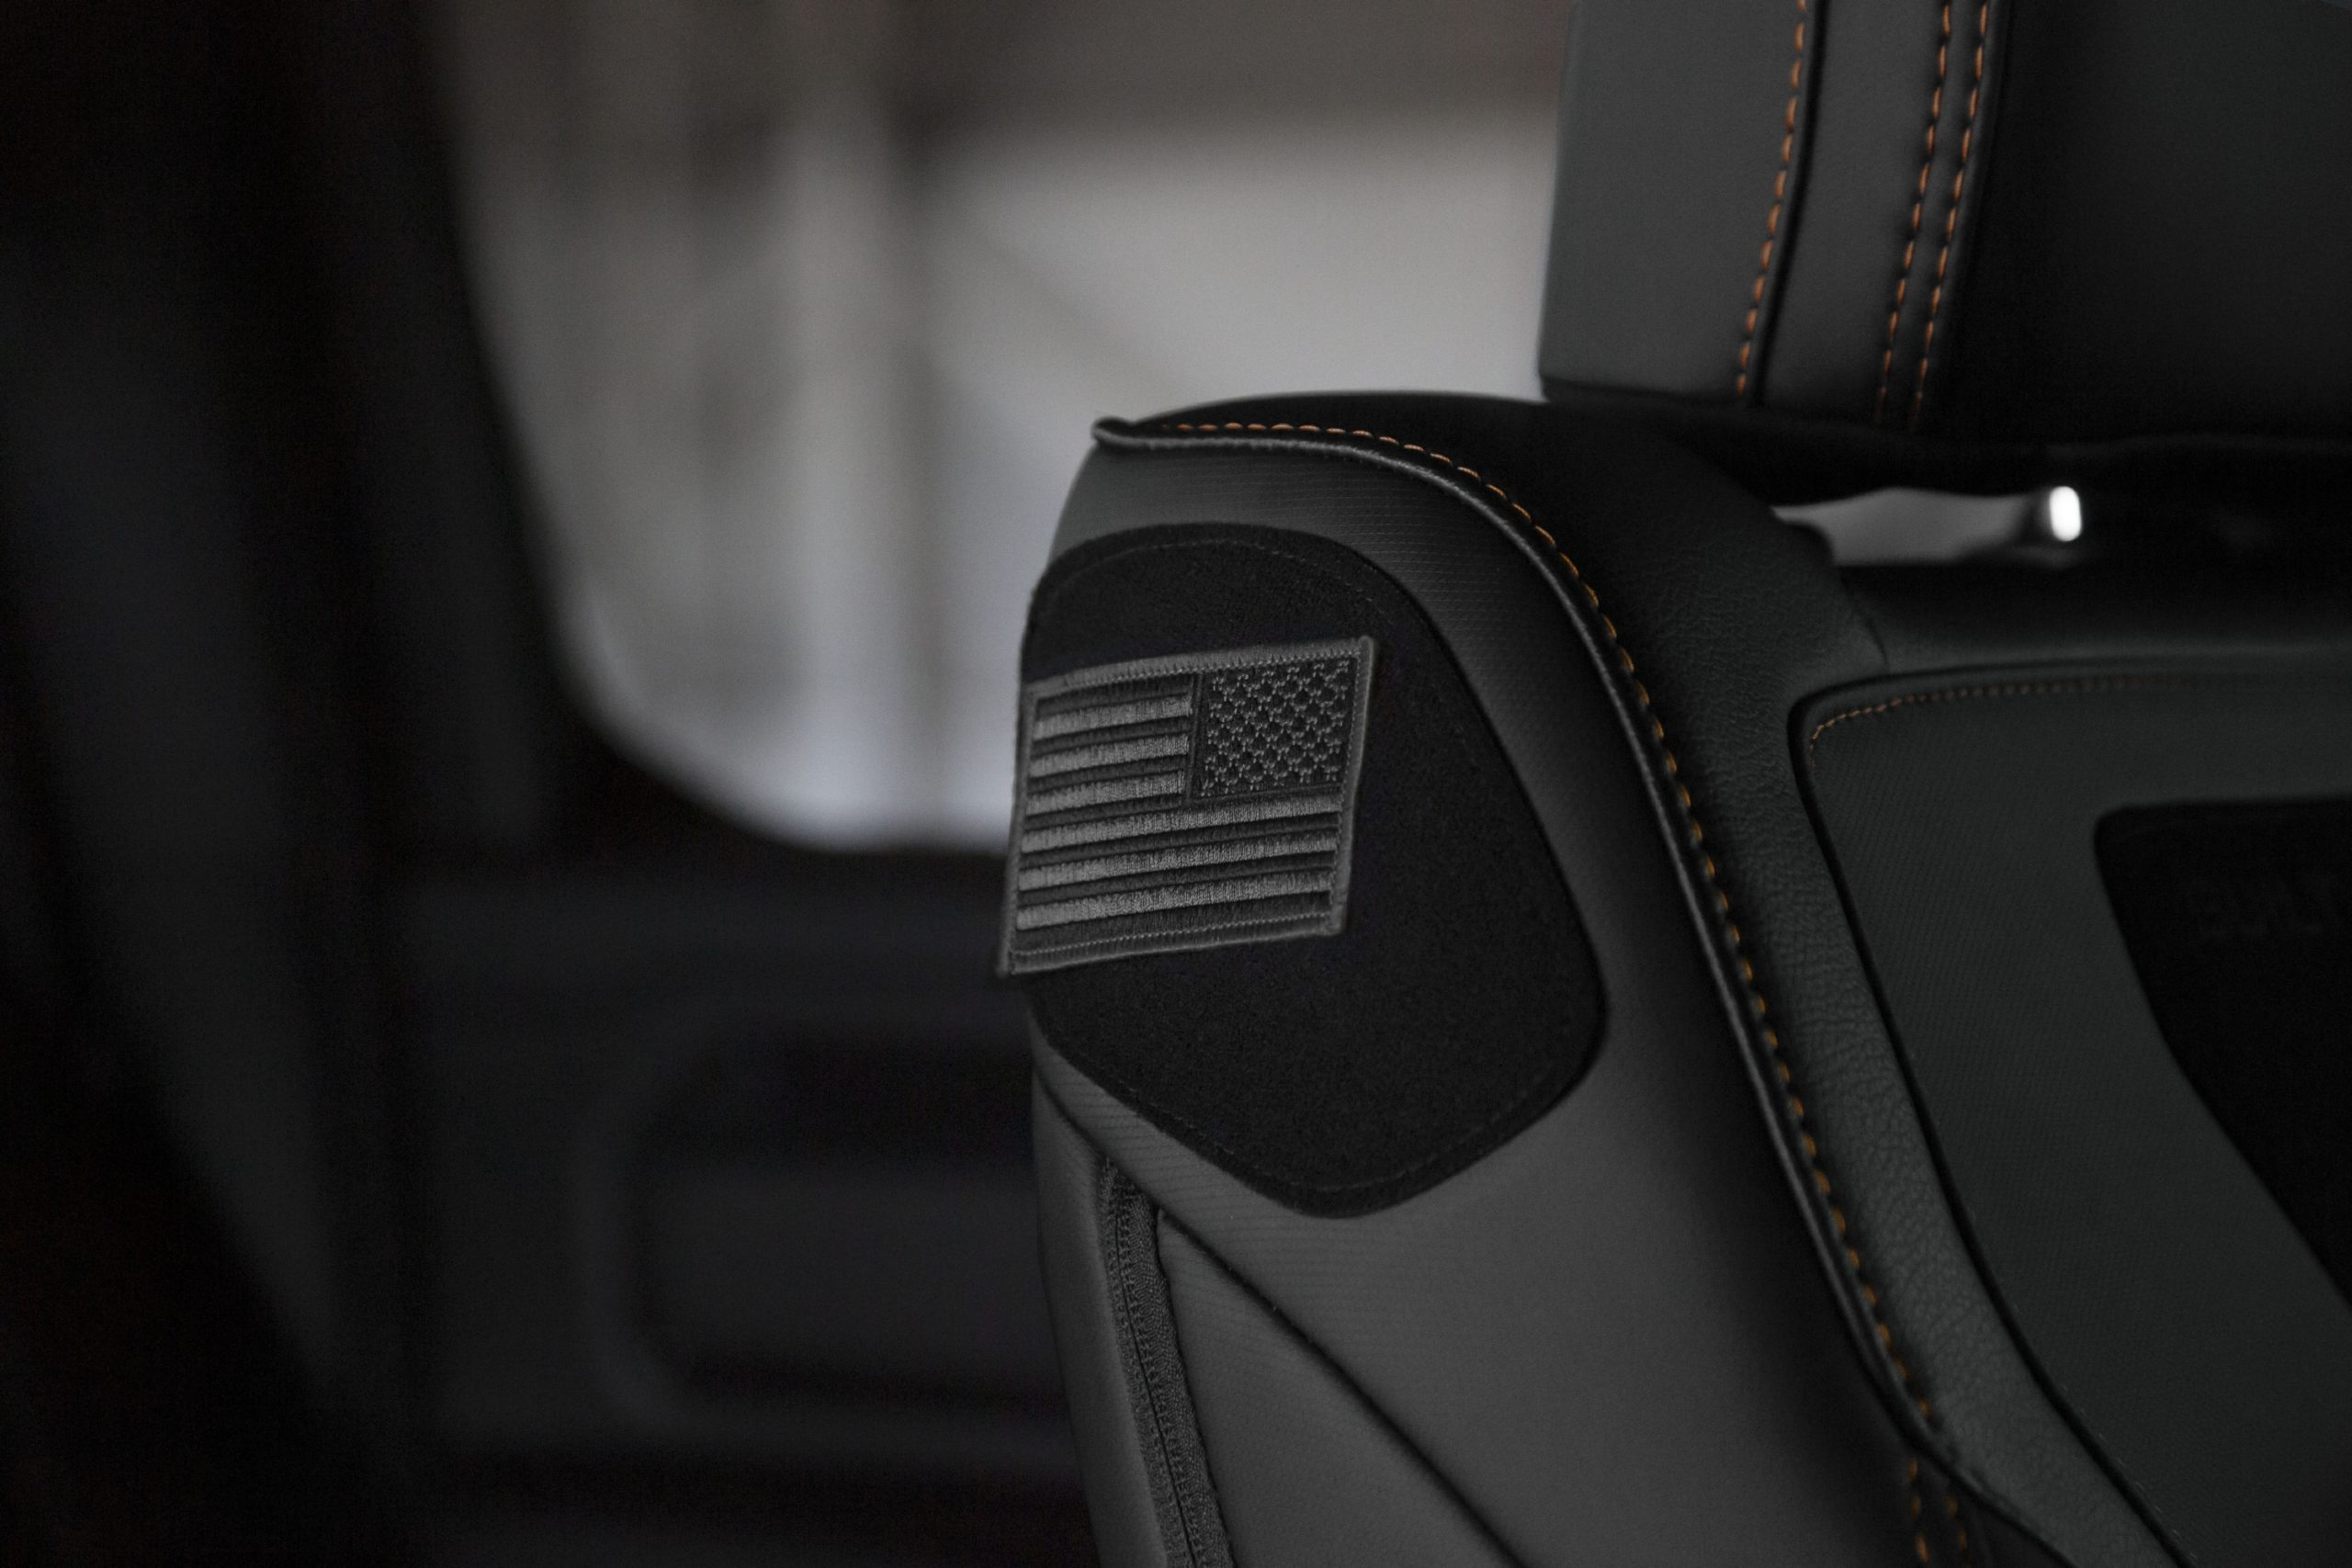 2021 Ram 1500 Built to Serve Edition front seat patch panel with black USA flag